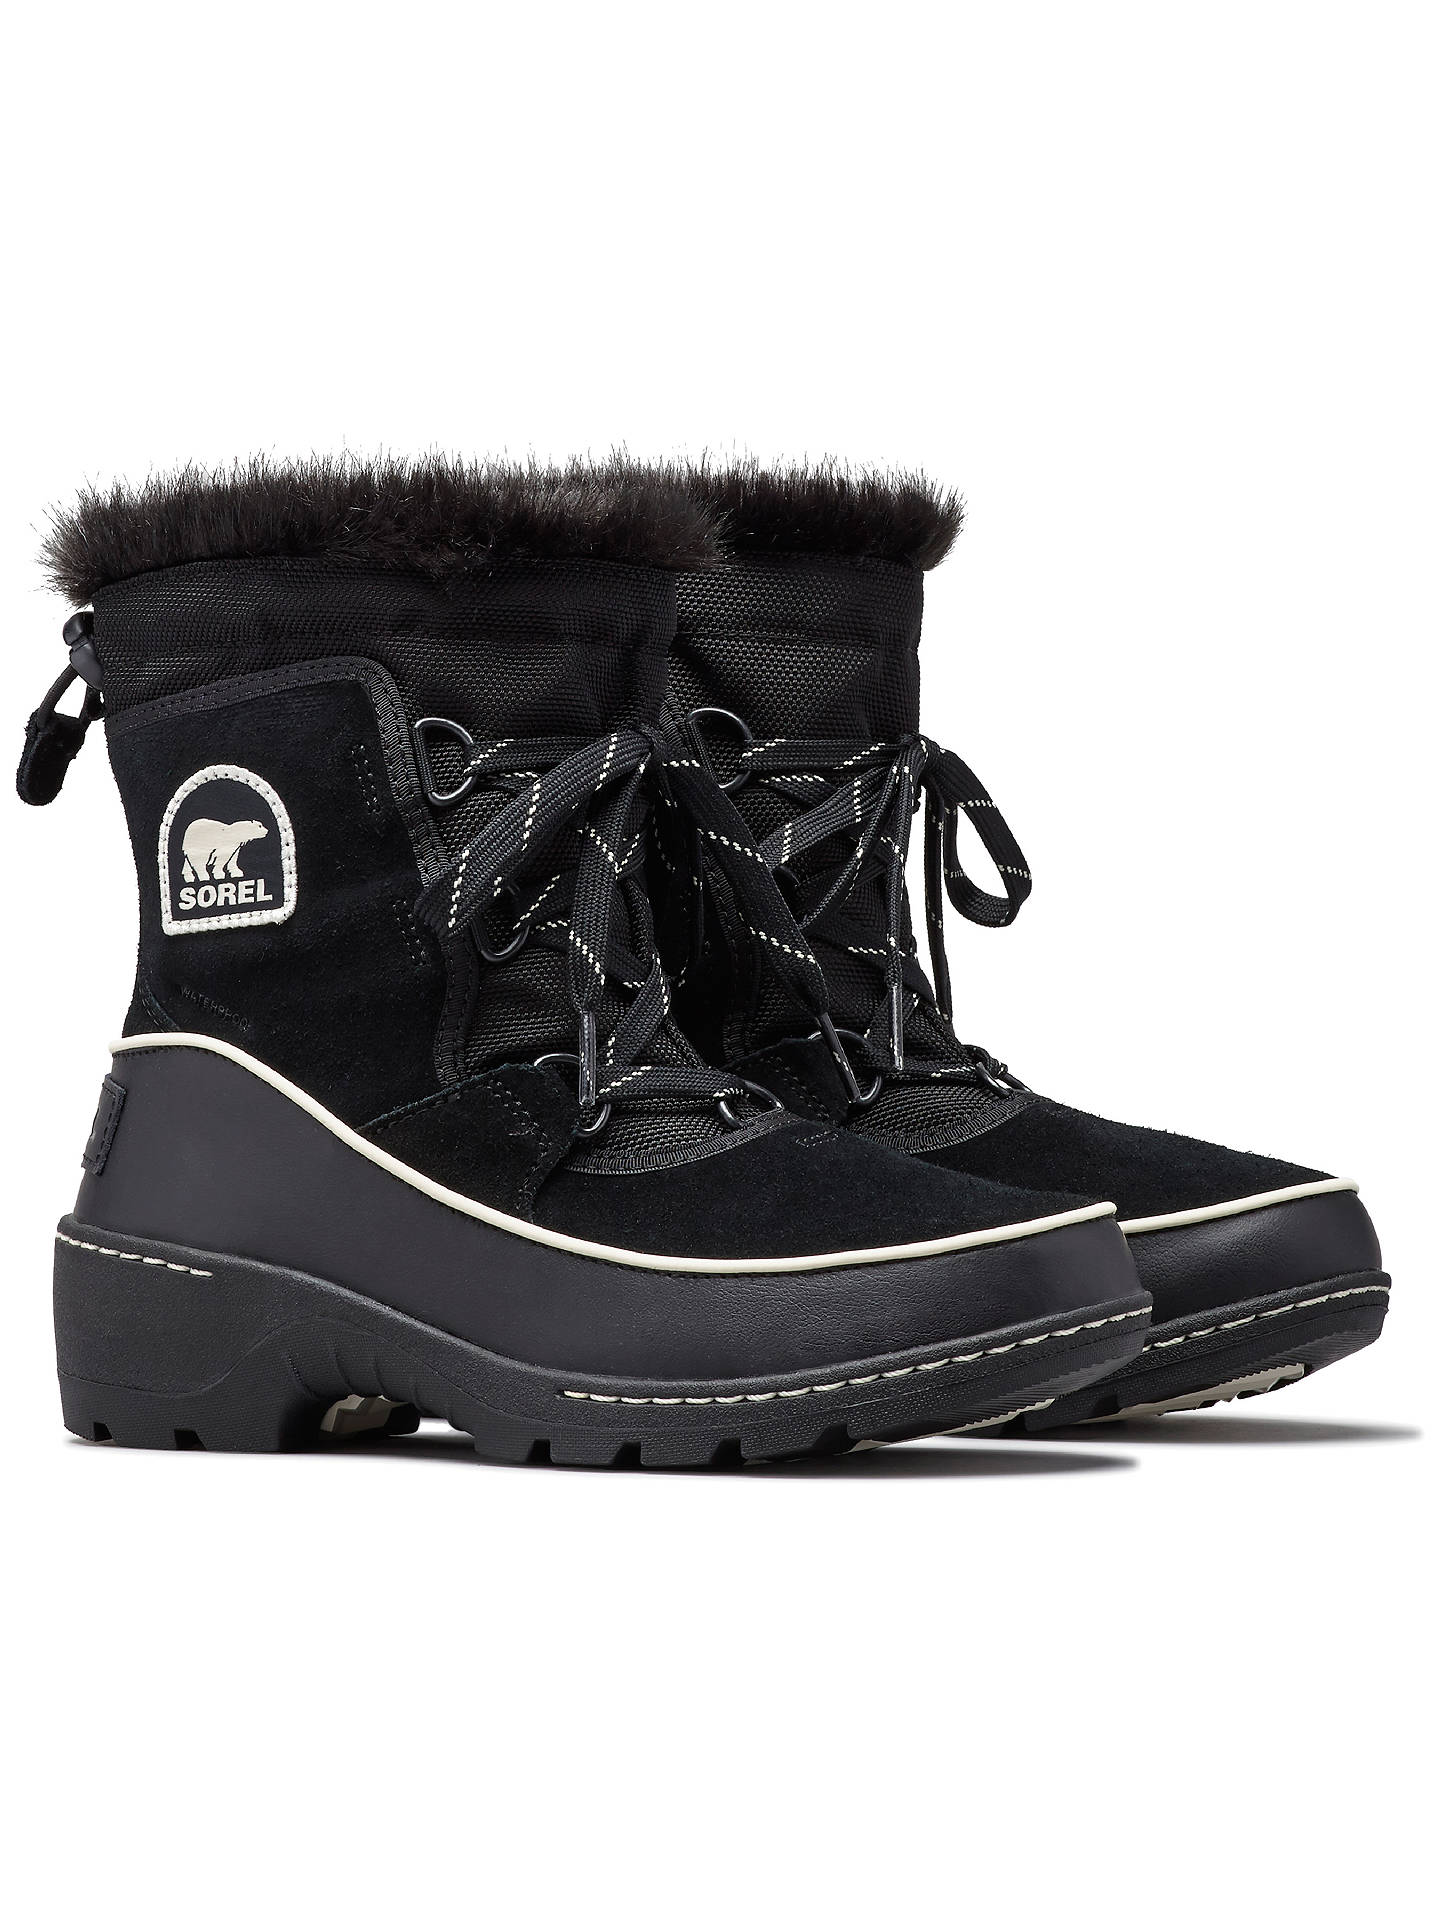 BuySorel Torino Lace Up Ankle Snow Boots, Black Suede, 6 Online at johnlewis.com